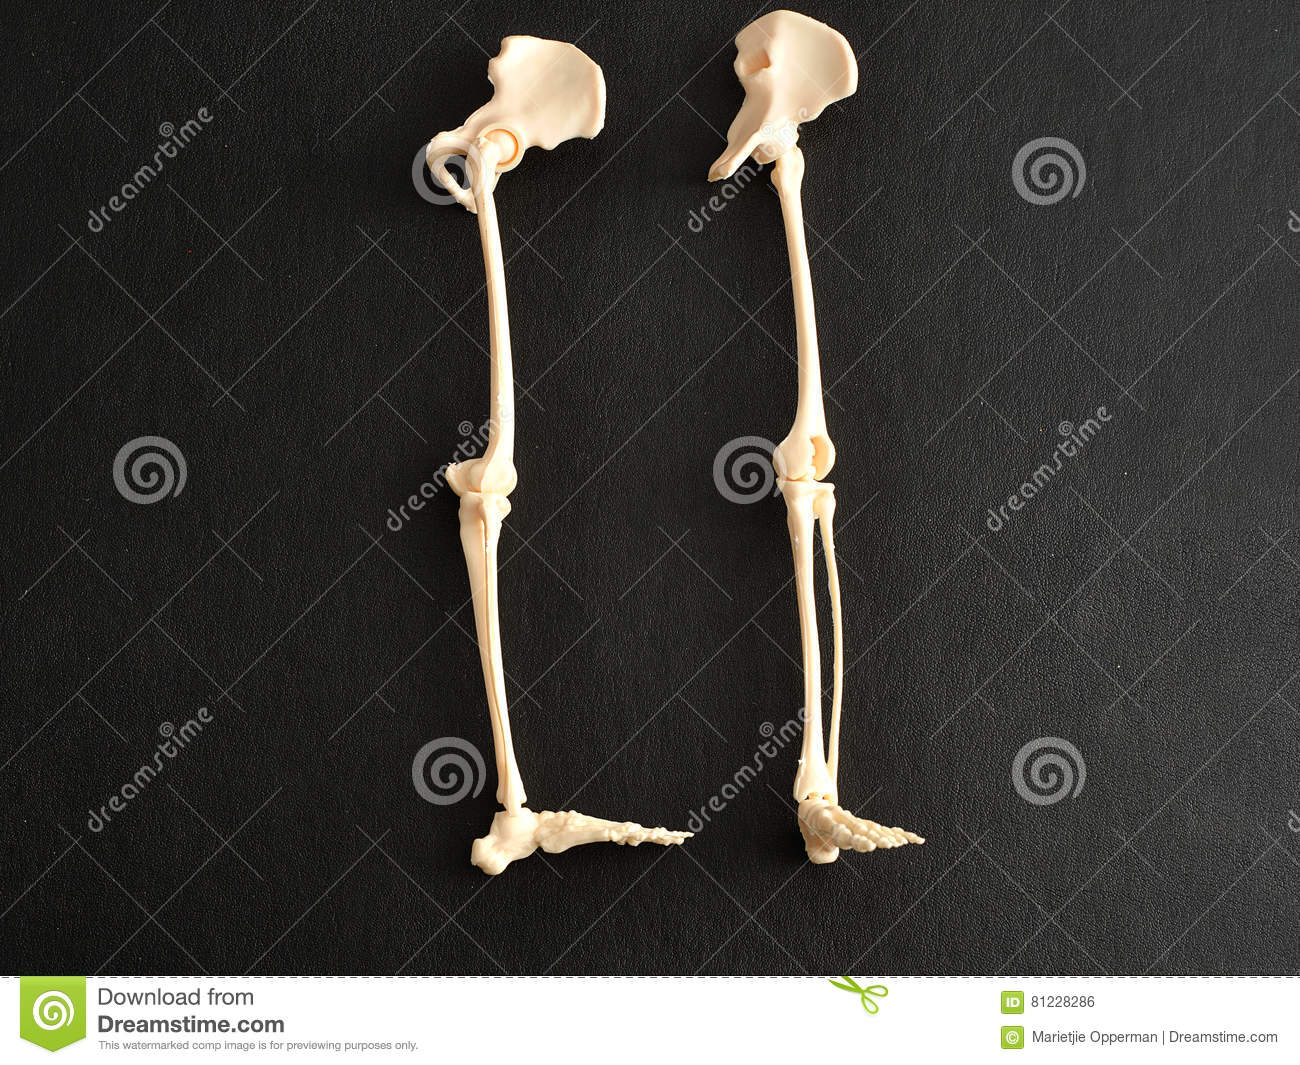 A Plastic Model Of A Human Skeleton Legs Stock Photo Image Of Body